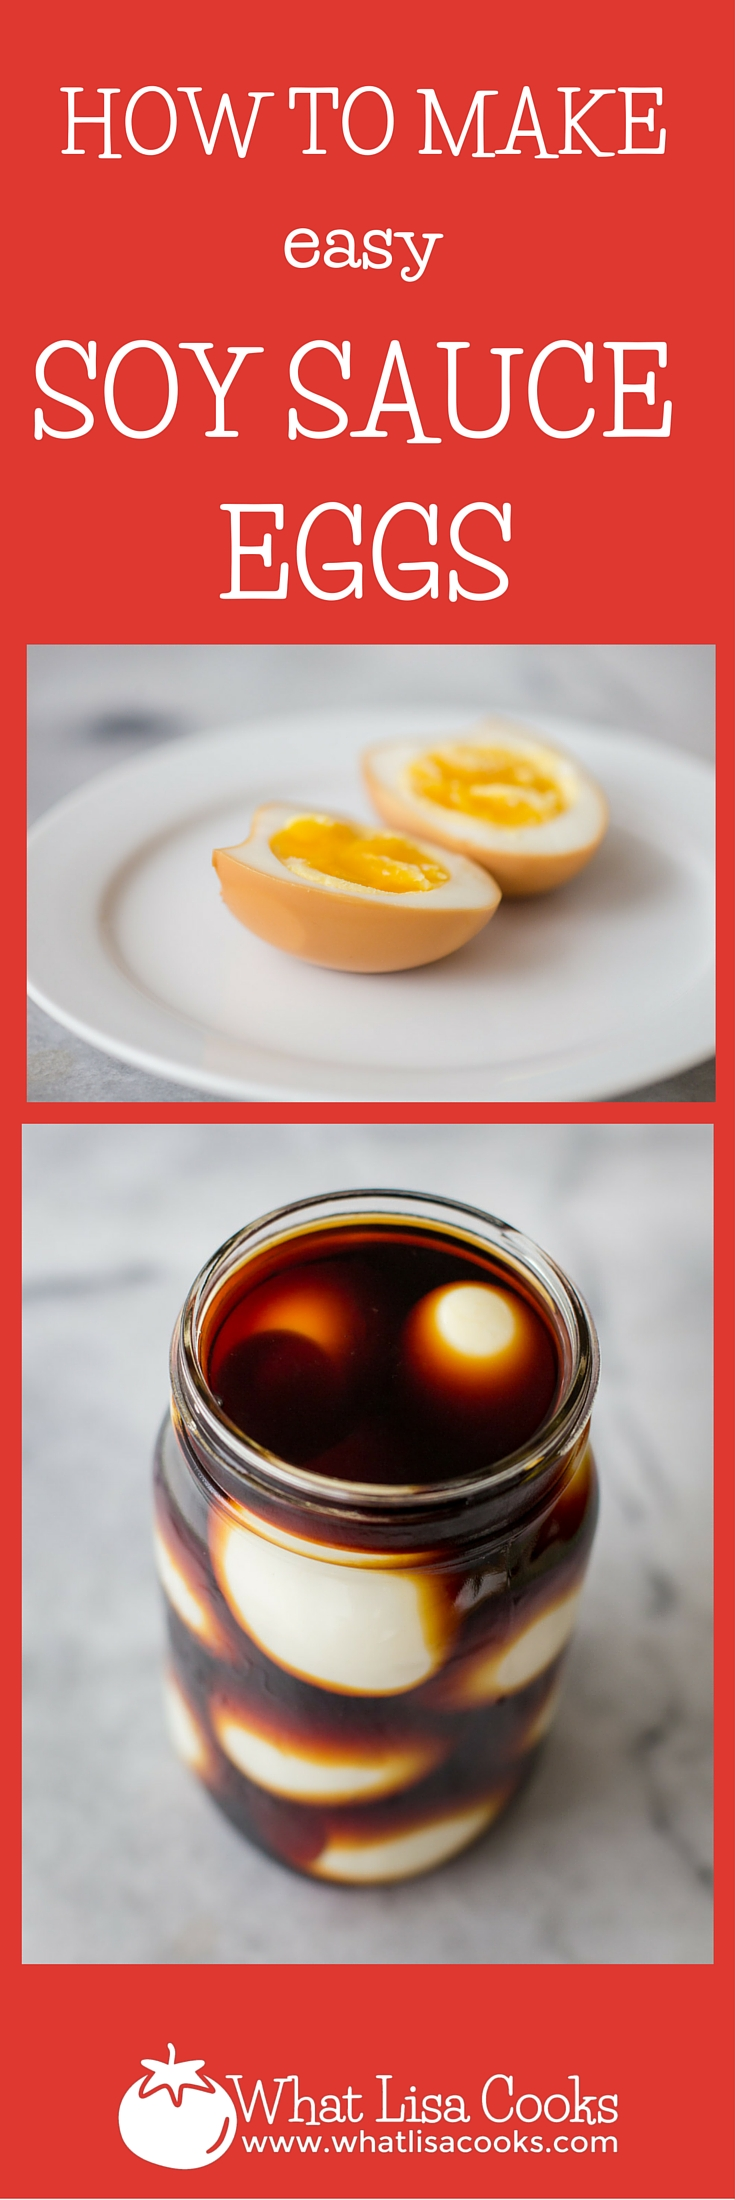 Not sure what to do with all those leftover boiled eggs from Easter? Try marinating them in soy sauce!